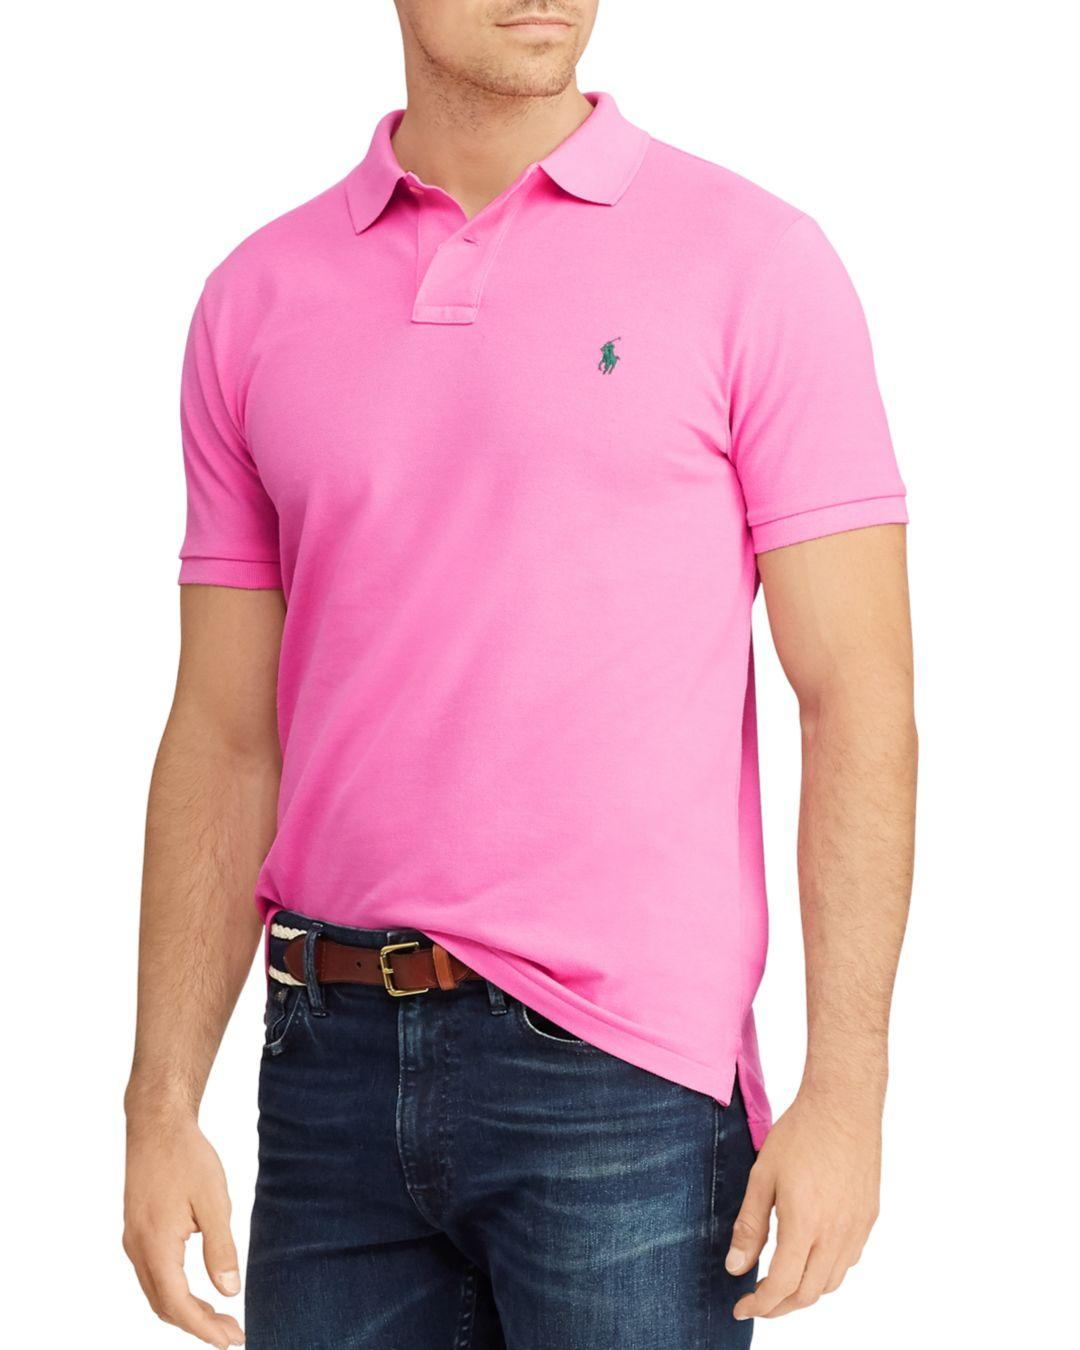 459231428 Polo Ralph Lauren. Men's Pink Custom Slim Fit Mesh Short Sleeve Polo Shirt